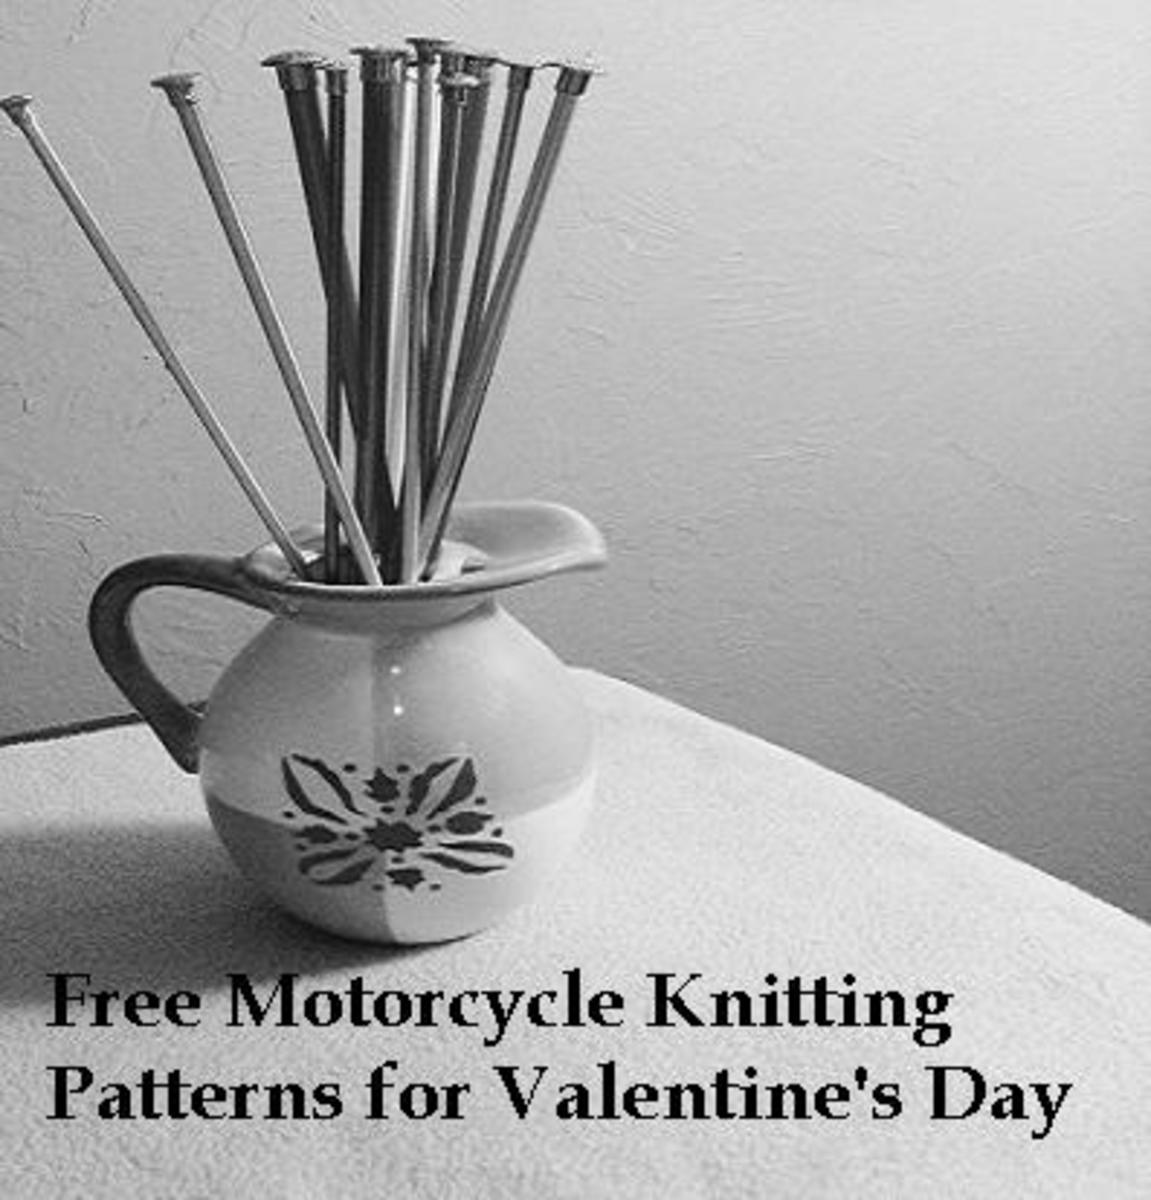 Get your materials and knit your man something for Valentine's Day this year!